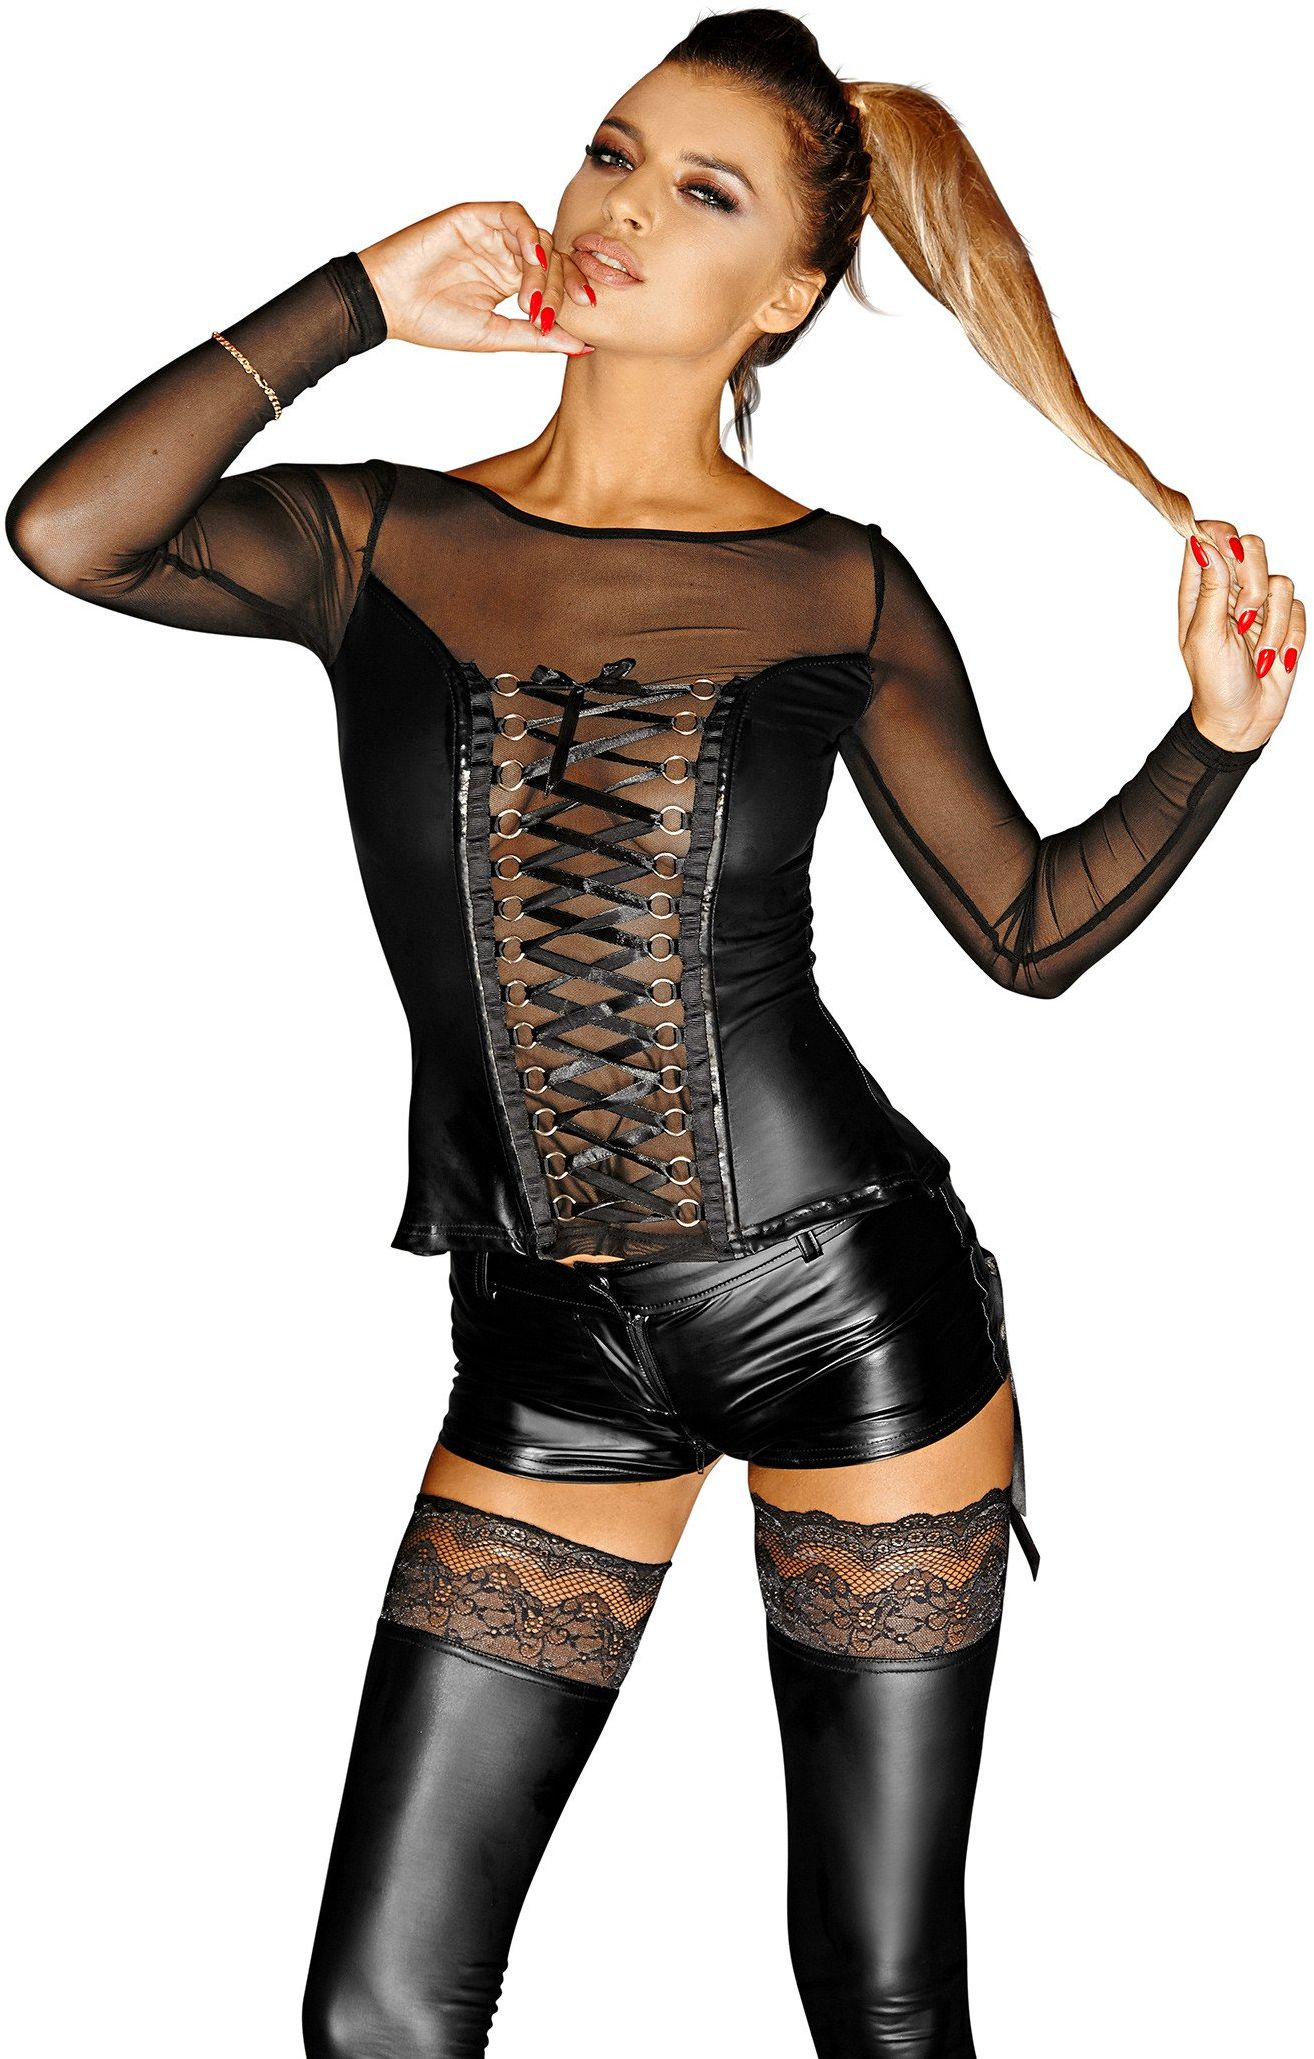 Noir Handmade F130 Powerwetlook Corsage Top with Long Sleeves, Lacing and Tull Inserts Narcissist XL